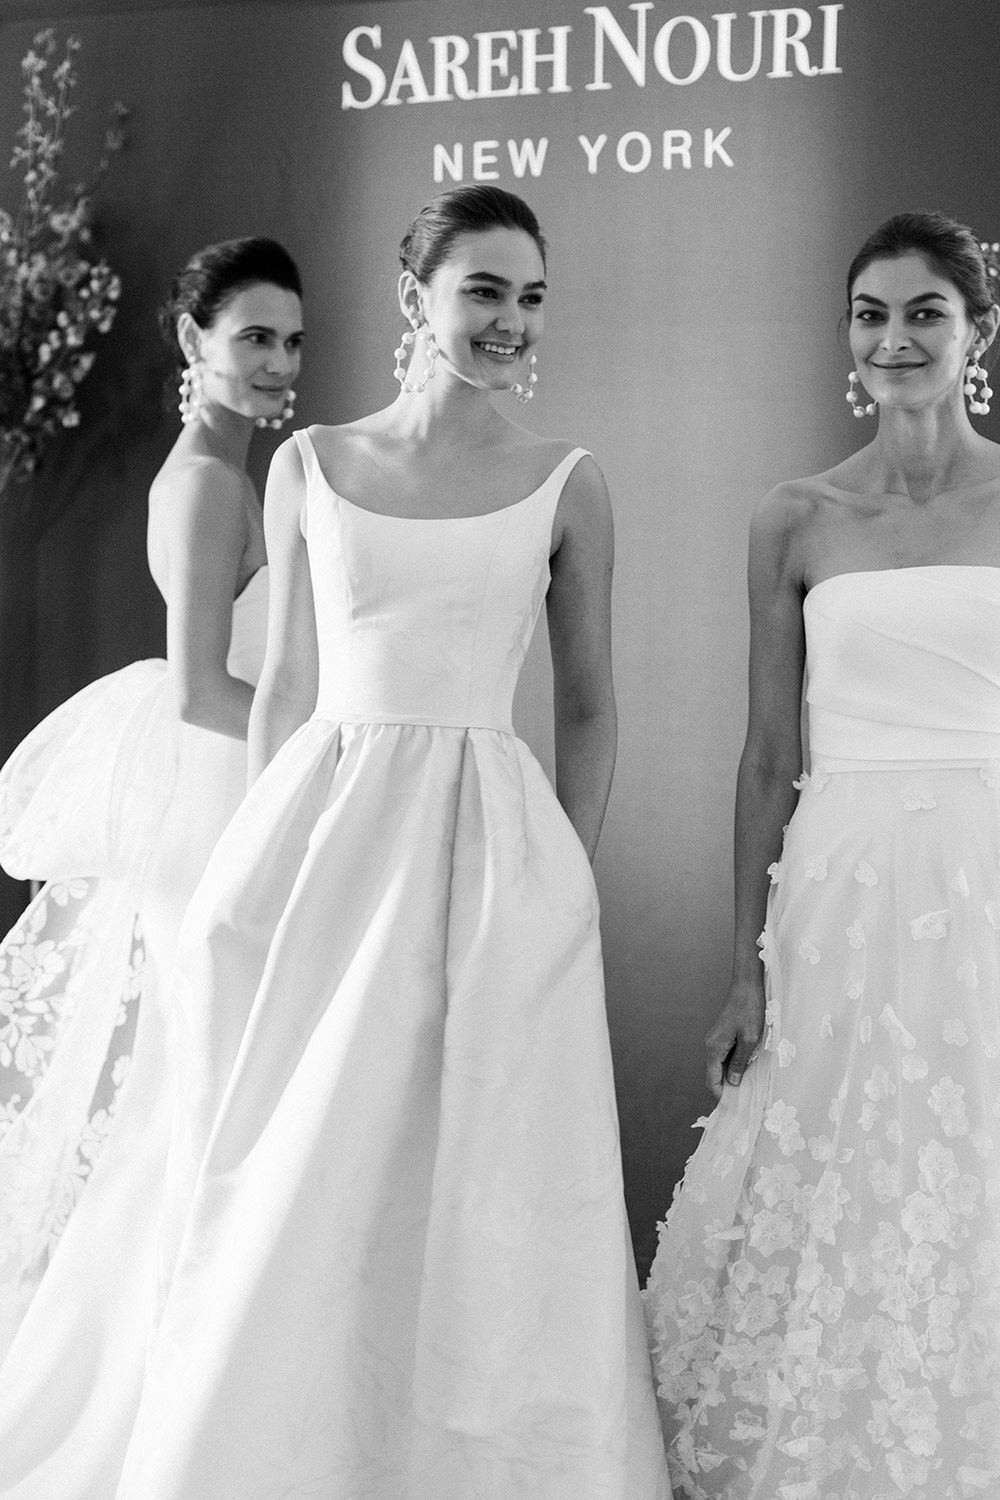 BRIDAL FASHION WEEK 2020 - Rime Arodaky, Rivini and Sareh Nouri